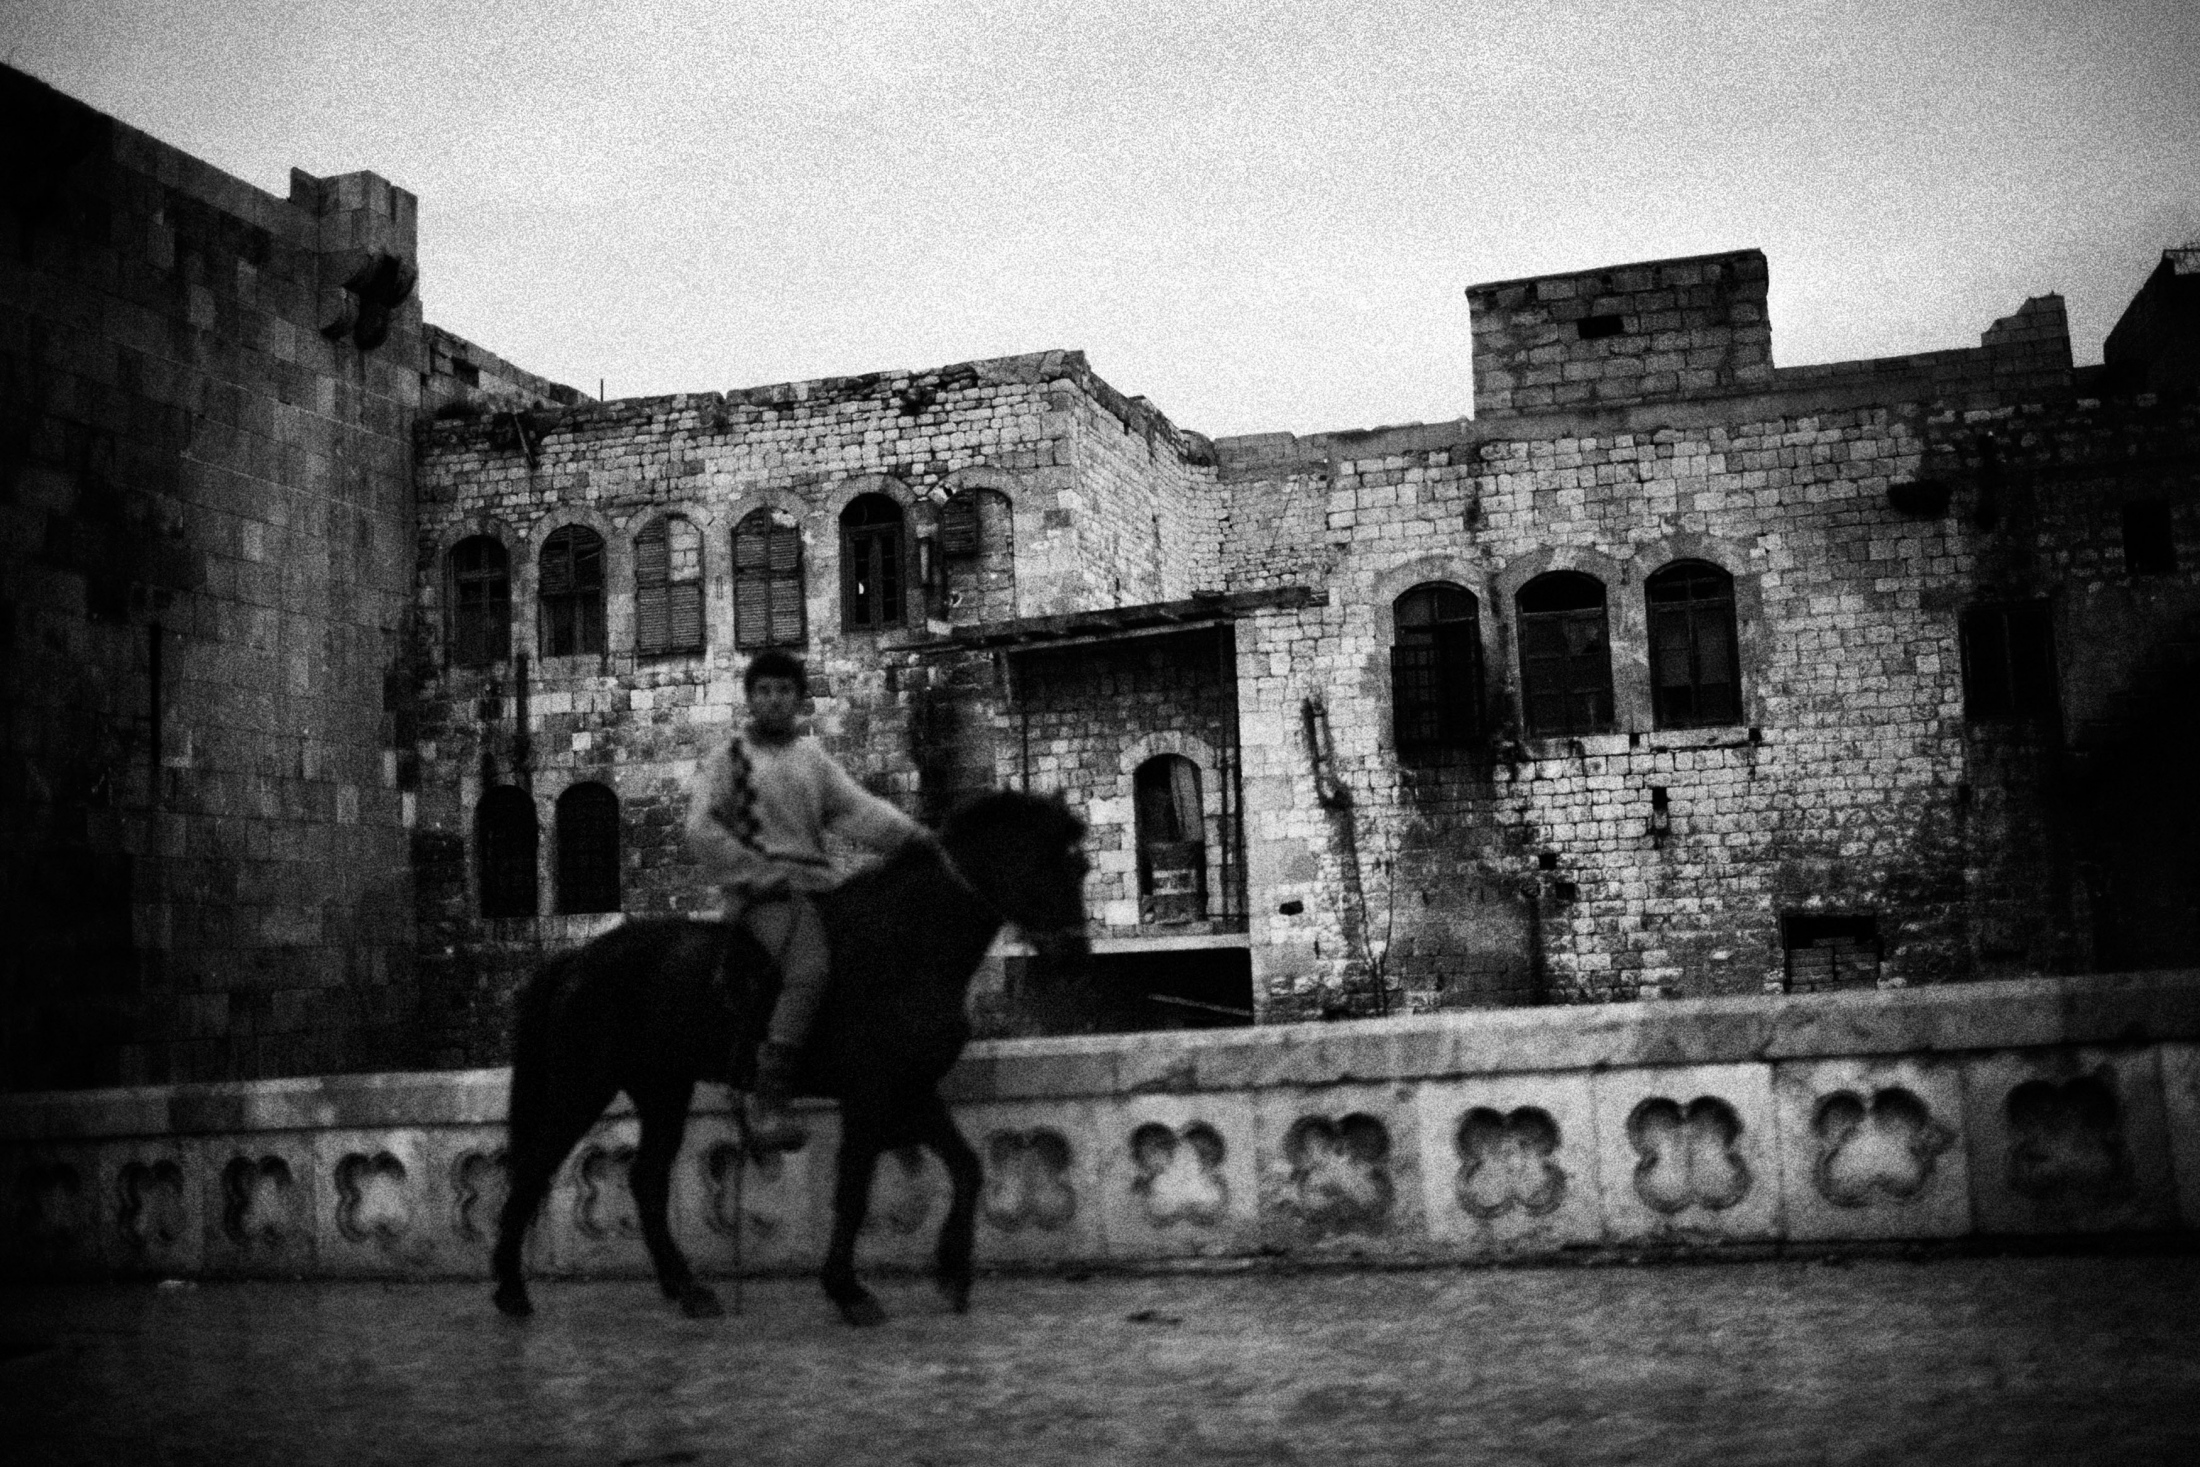 """A boy riding a horse near the Old Town frontline of Aleppo, Syria, Wednesday, Jan. 6, 2013. The United Nations estimated that more than 400,000 people have been killed in Syria's 60-month-old uprising against authoritarian rule, a toll one-third higher than what anti-regime activists had counted. The U.N. human rights chief called the toll """"truly shocking."""" Copyright: Spanish Photojournalist Andoni Lubaki"""